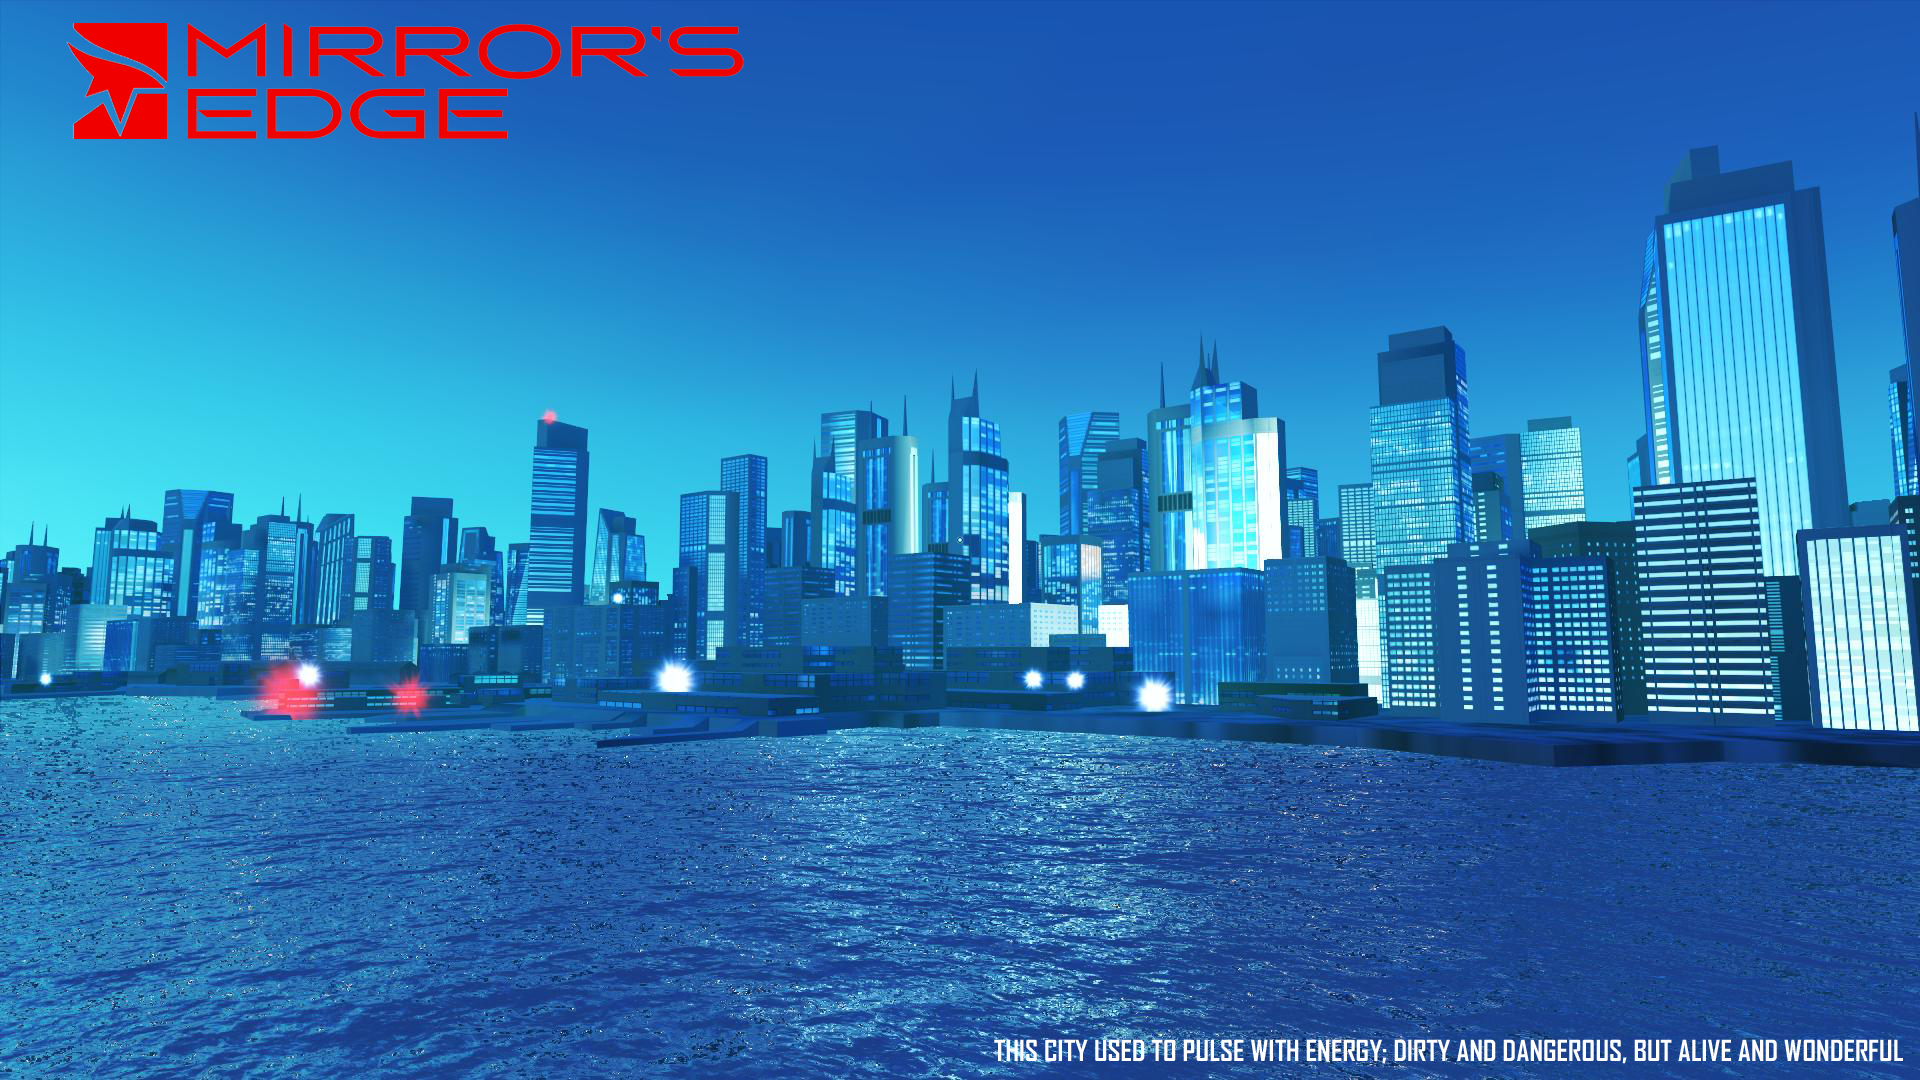 Mirror S Edge Wallpaper 162956